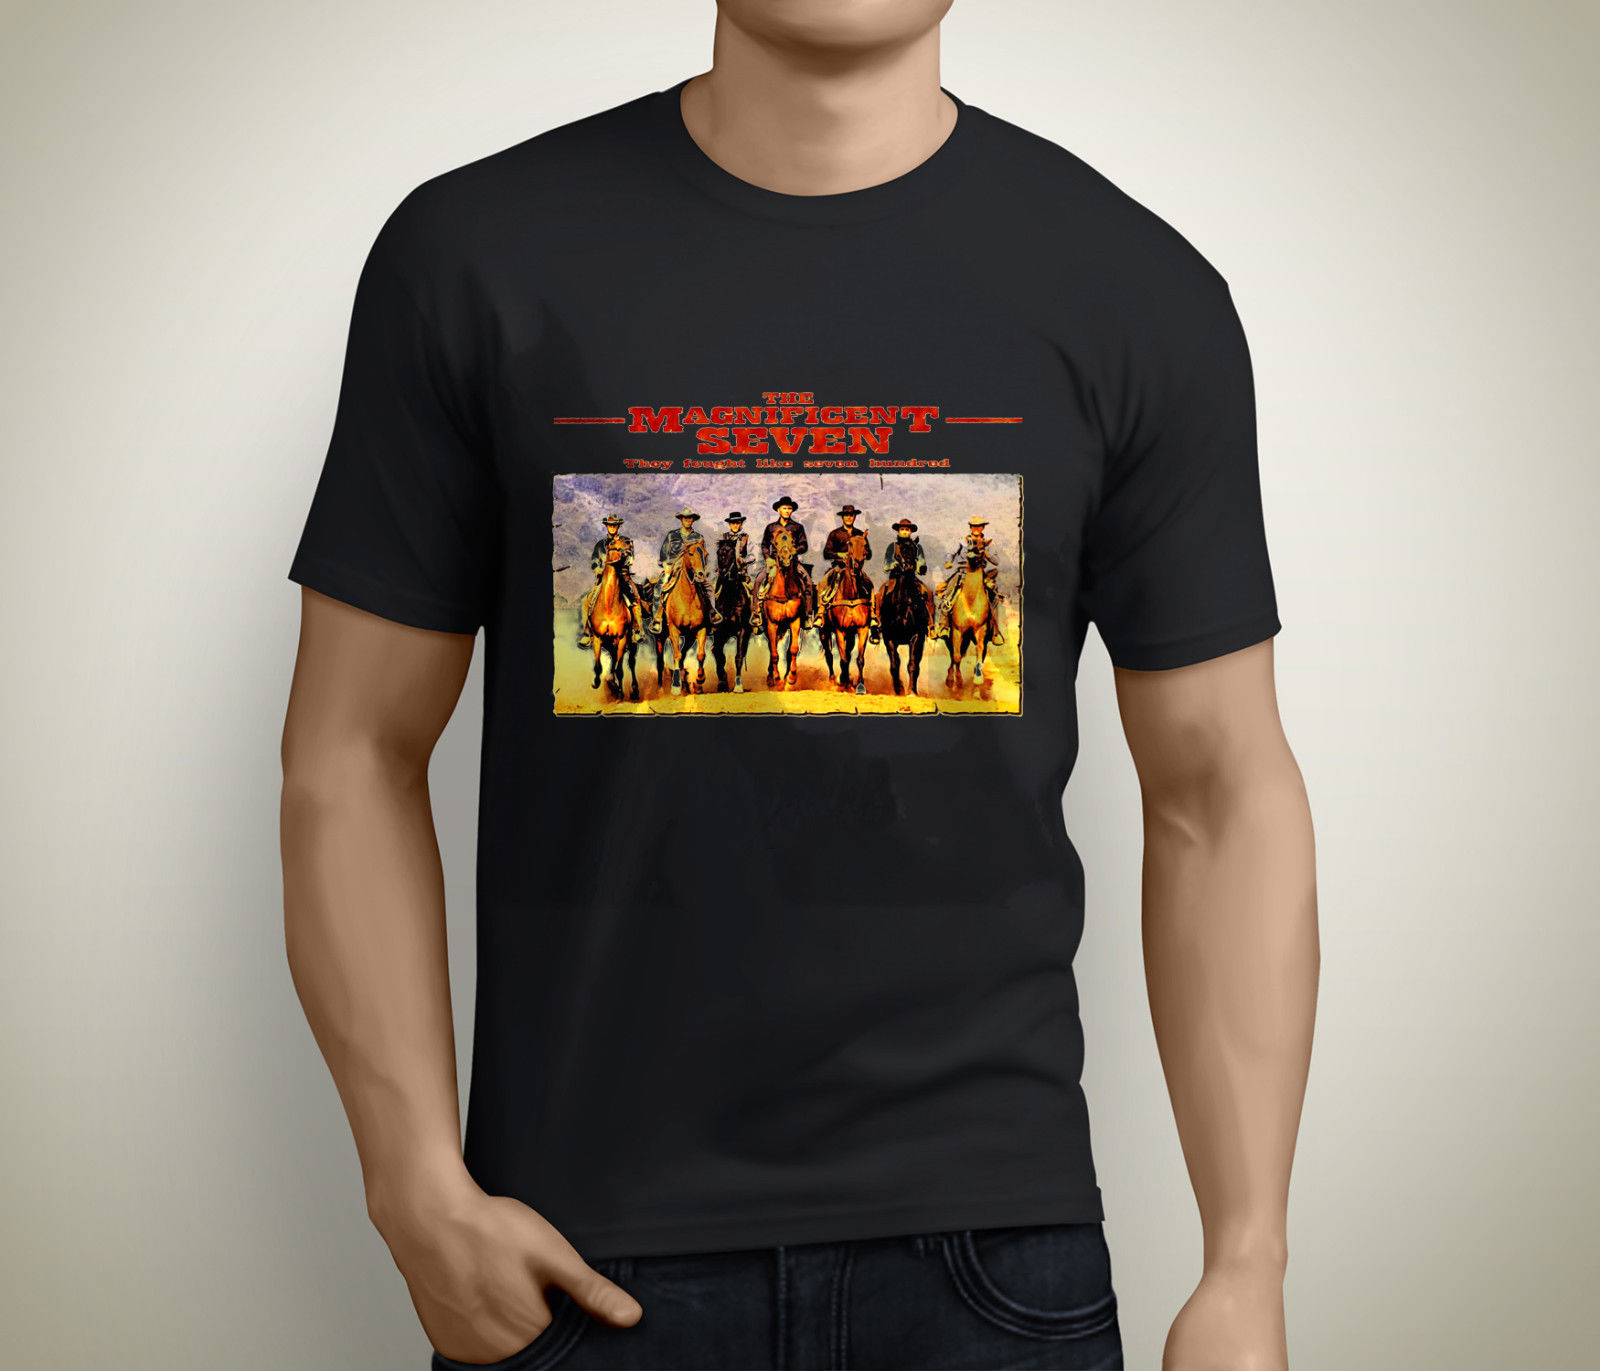 New Magnificent 7 New Movie Denzel Washington Men's Black T-Shirt Size S to 3XL Cartoon Print Short Sleeve T Shirt Free Shipping image